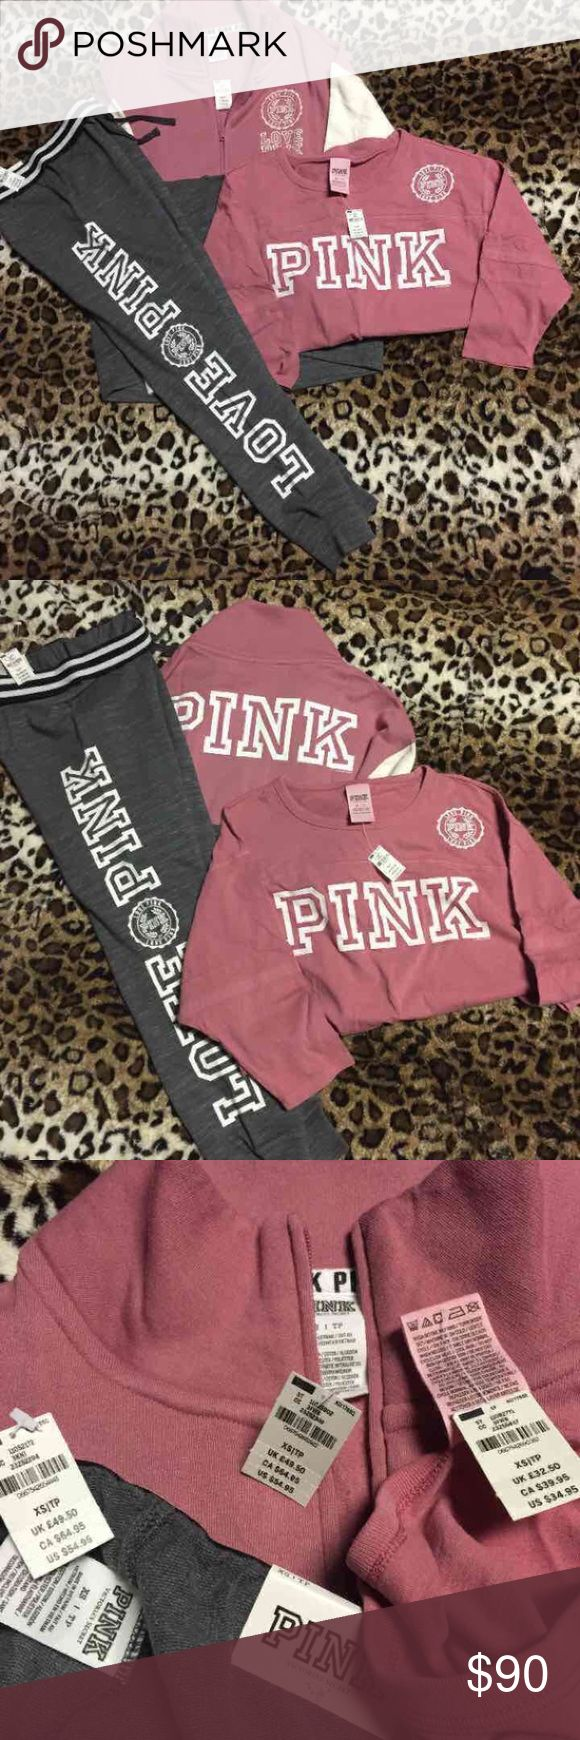 Vs/pink 3 piece color block outfit All size xs. Begonia/white/grey/cream. Gym pants, high/low 1/4 zip, 3/4 sleeve boyfriend jersey ❌NO TRADES❌ ❌ONLY MAKE OFFERS THROUGH THE OFFER BUTTON❌ ❌POSH TAKES 20% PLEASE BE RESPECTFUL WHEN MAKING OFFERS❌ PINK Victoria's Secret Tops Sweatshirts & Hoodies